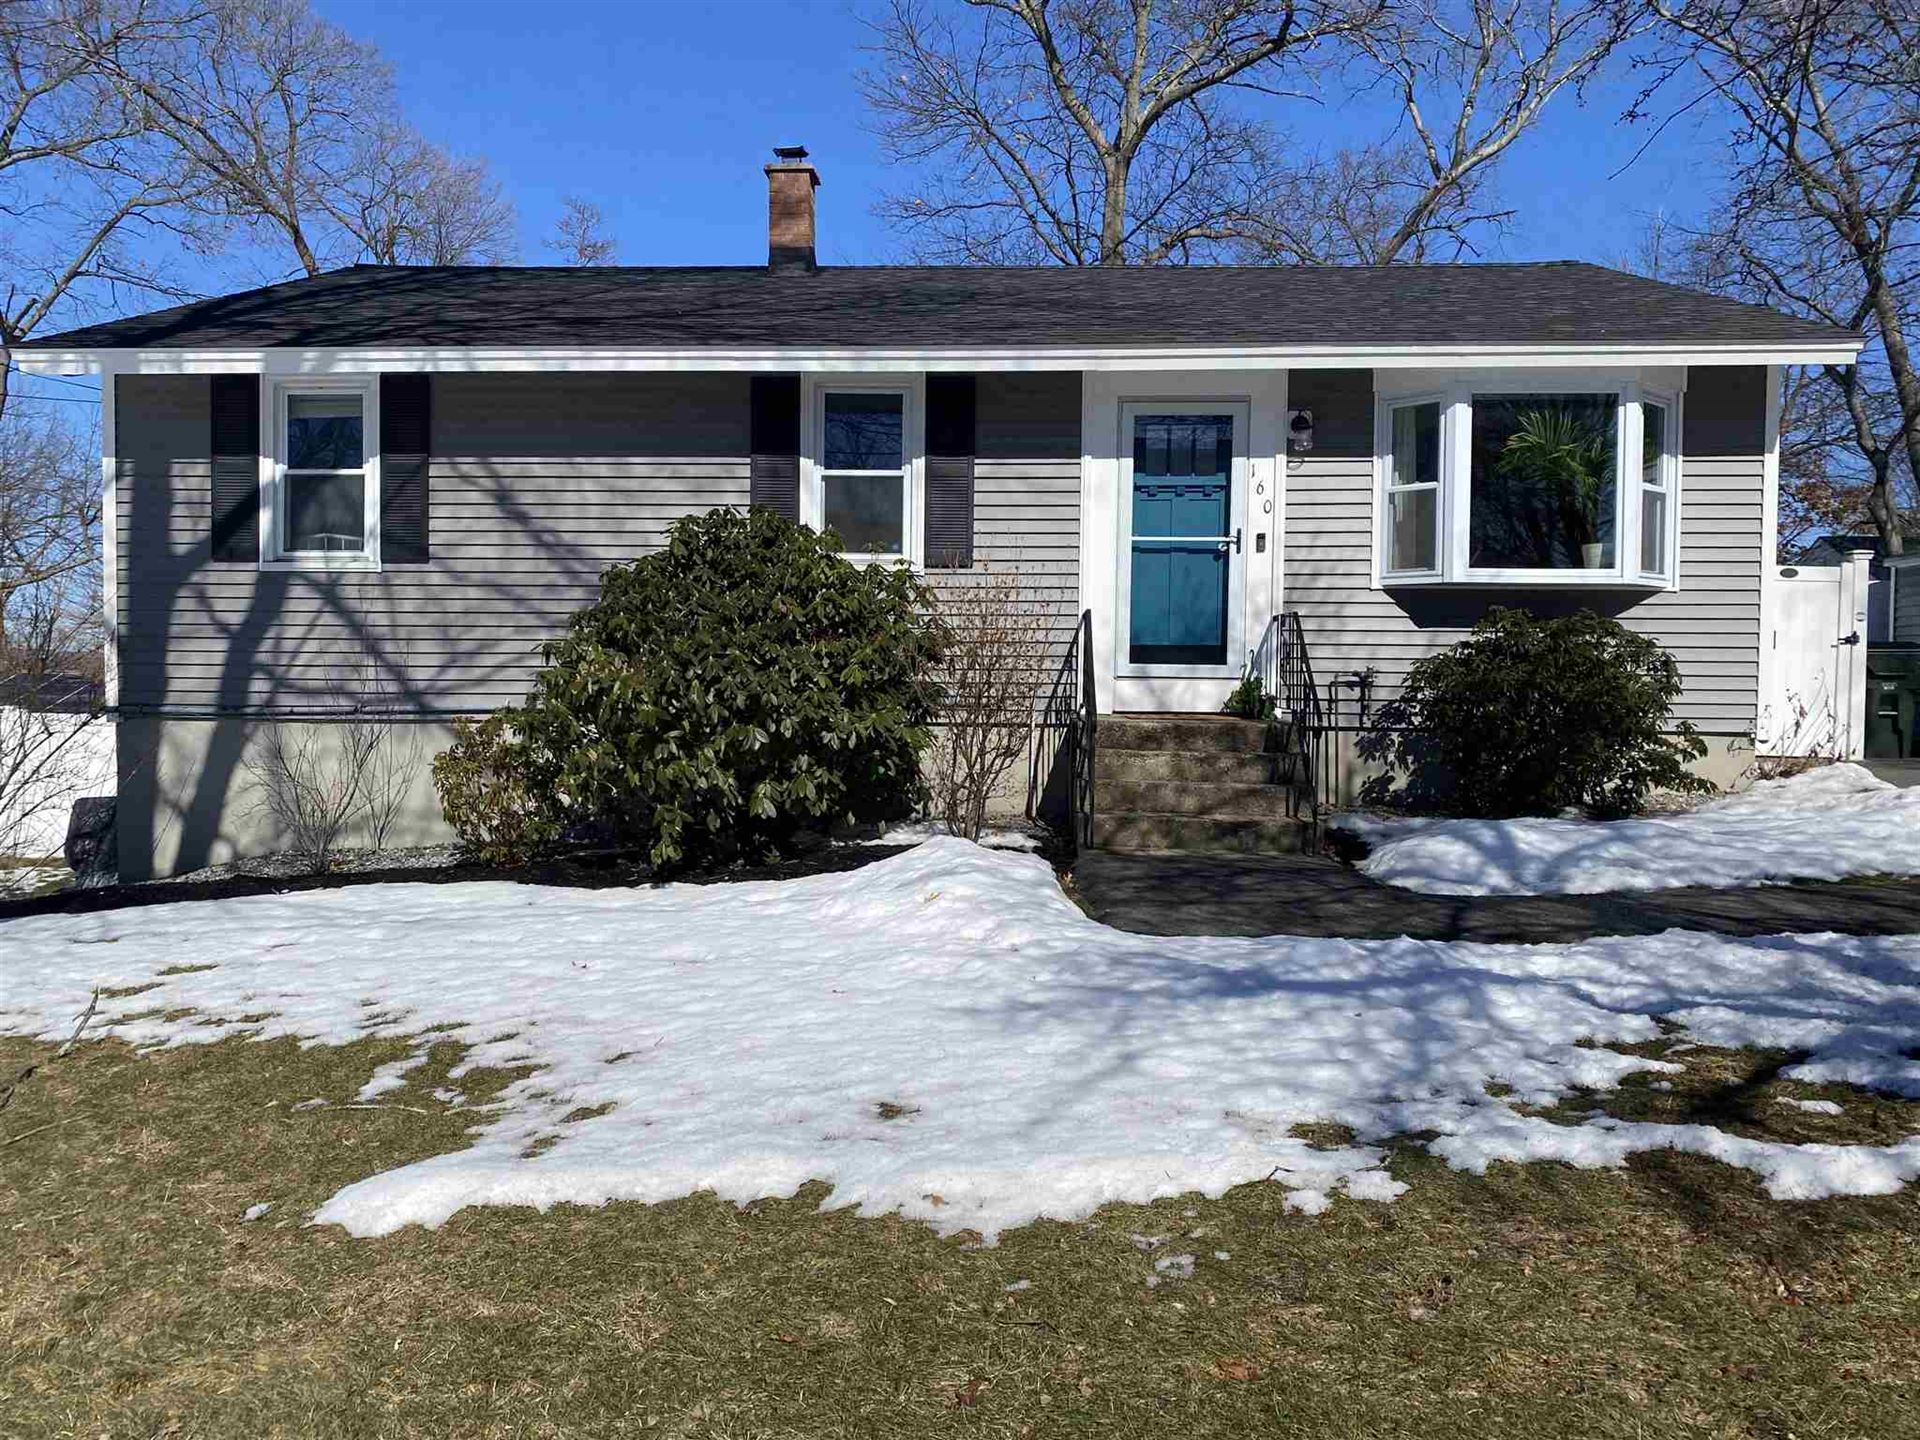 160 Brunelle Avenue, Manchester, NH 03103 - MLS#: 4849053